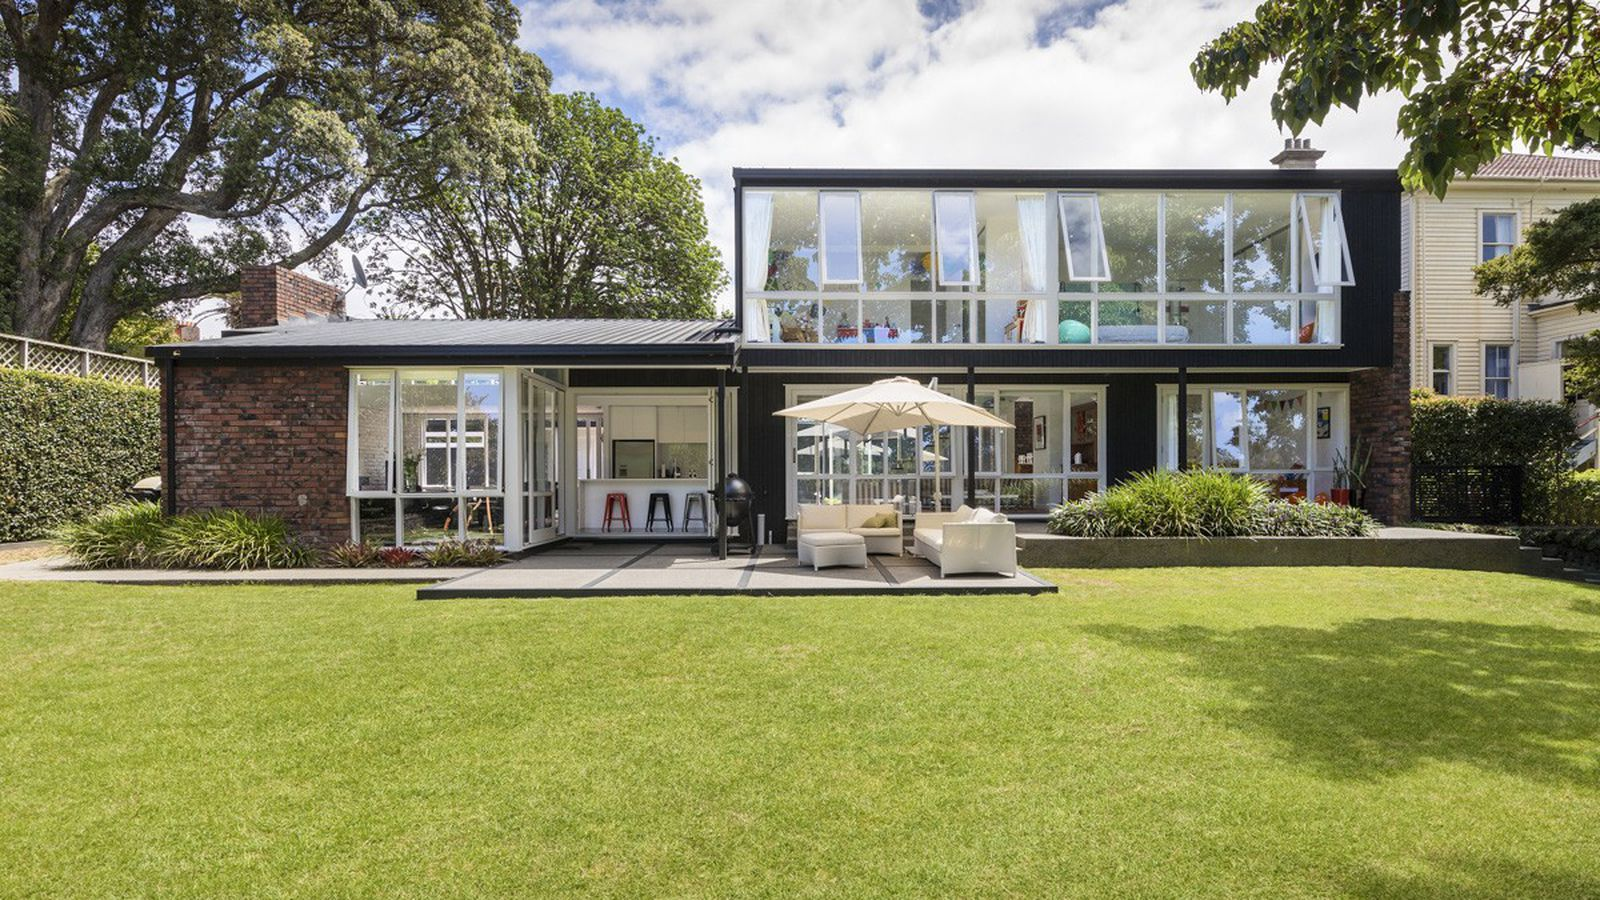 Nab This Lovingly Renovated Midcentury Home In New Zealand